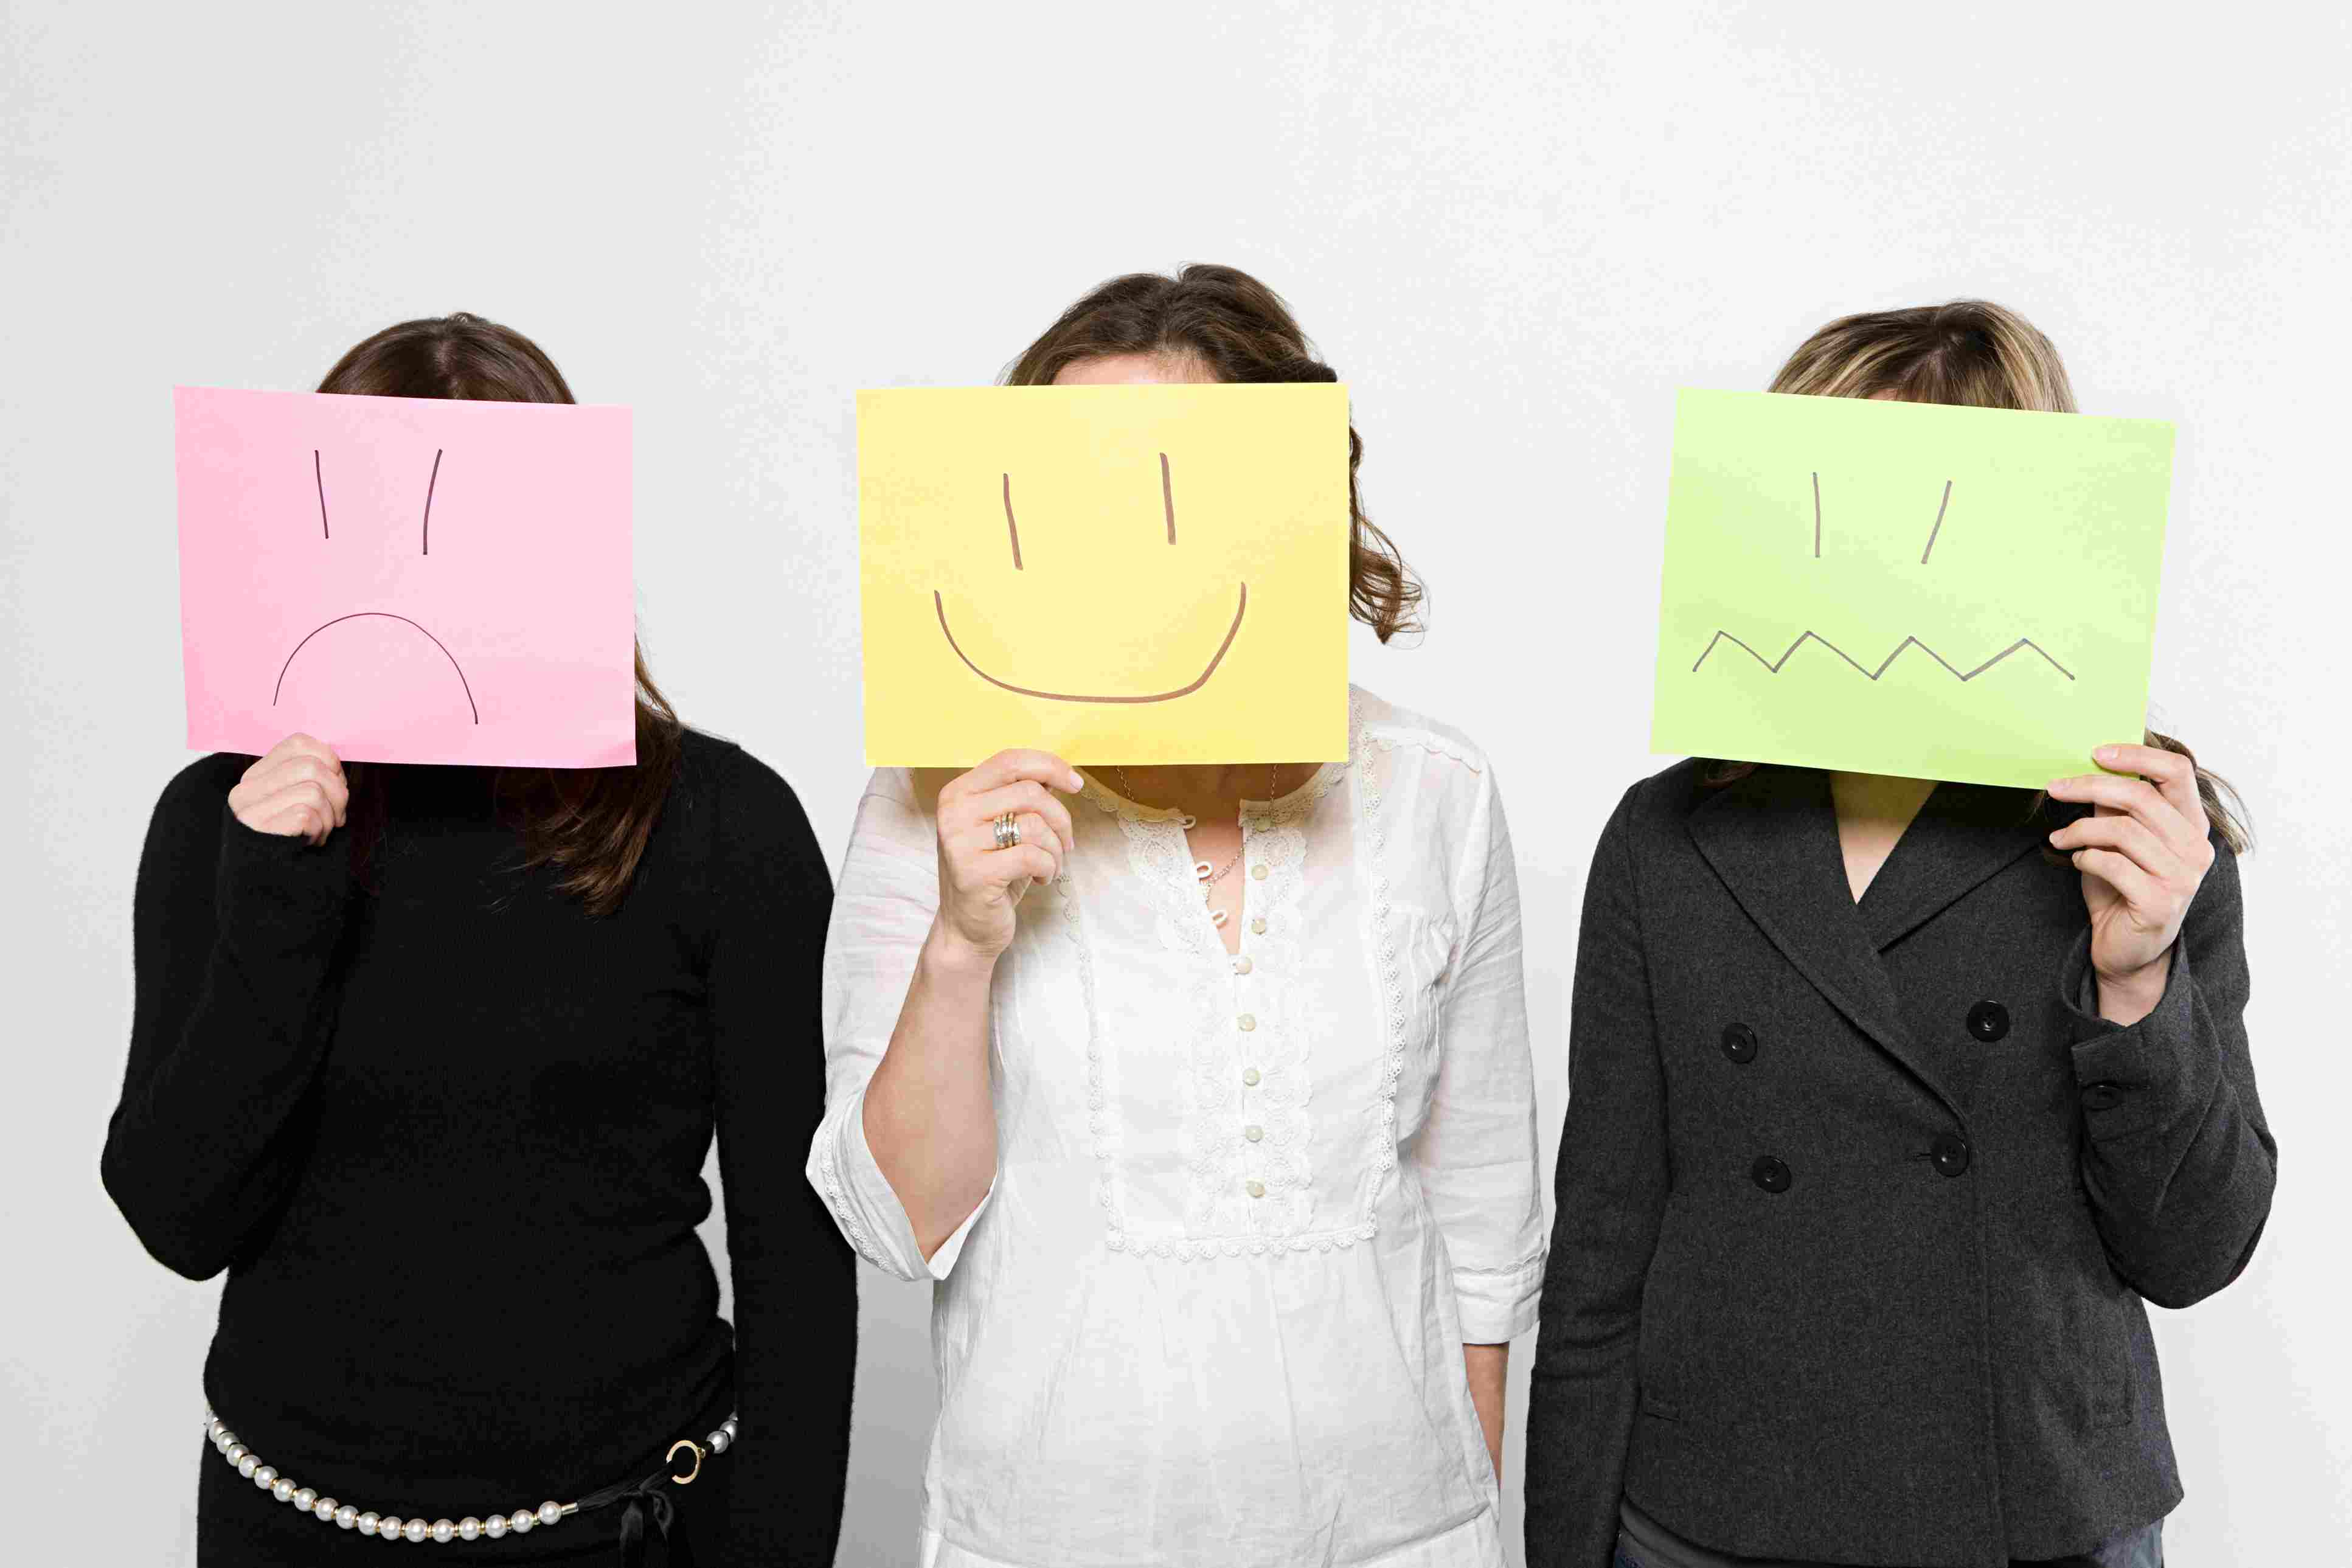 5 Components Of Emotional Intelligence